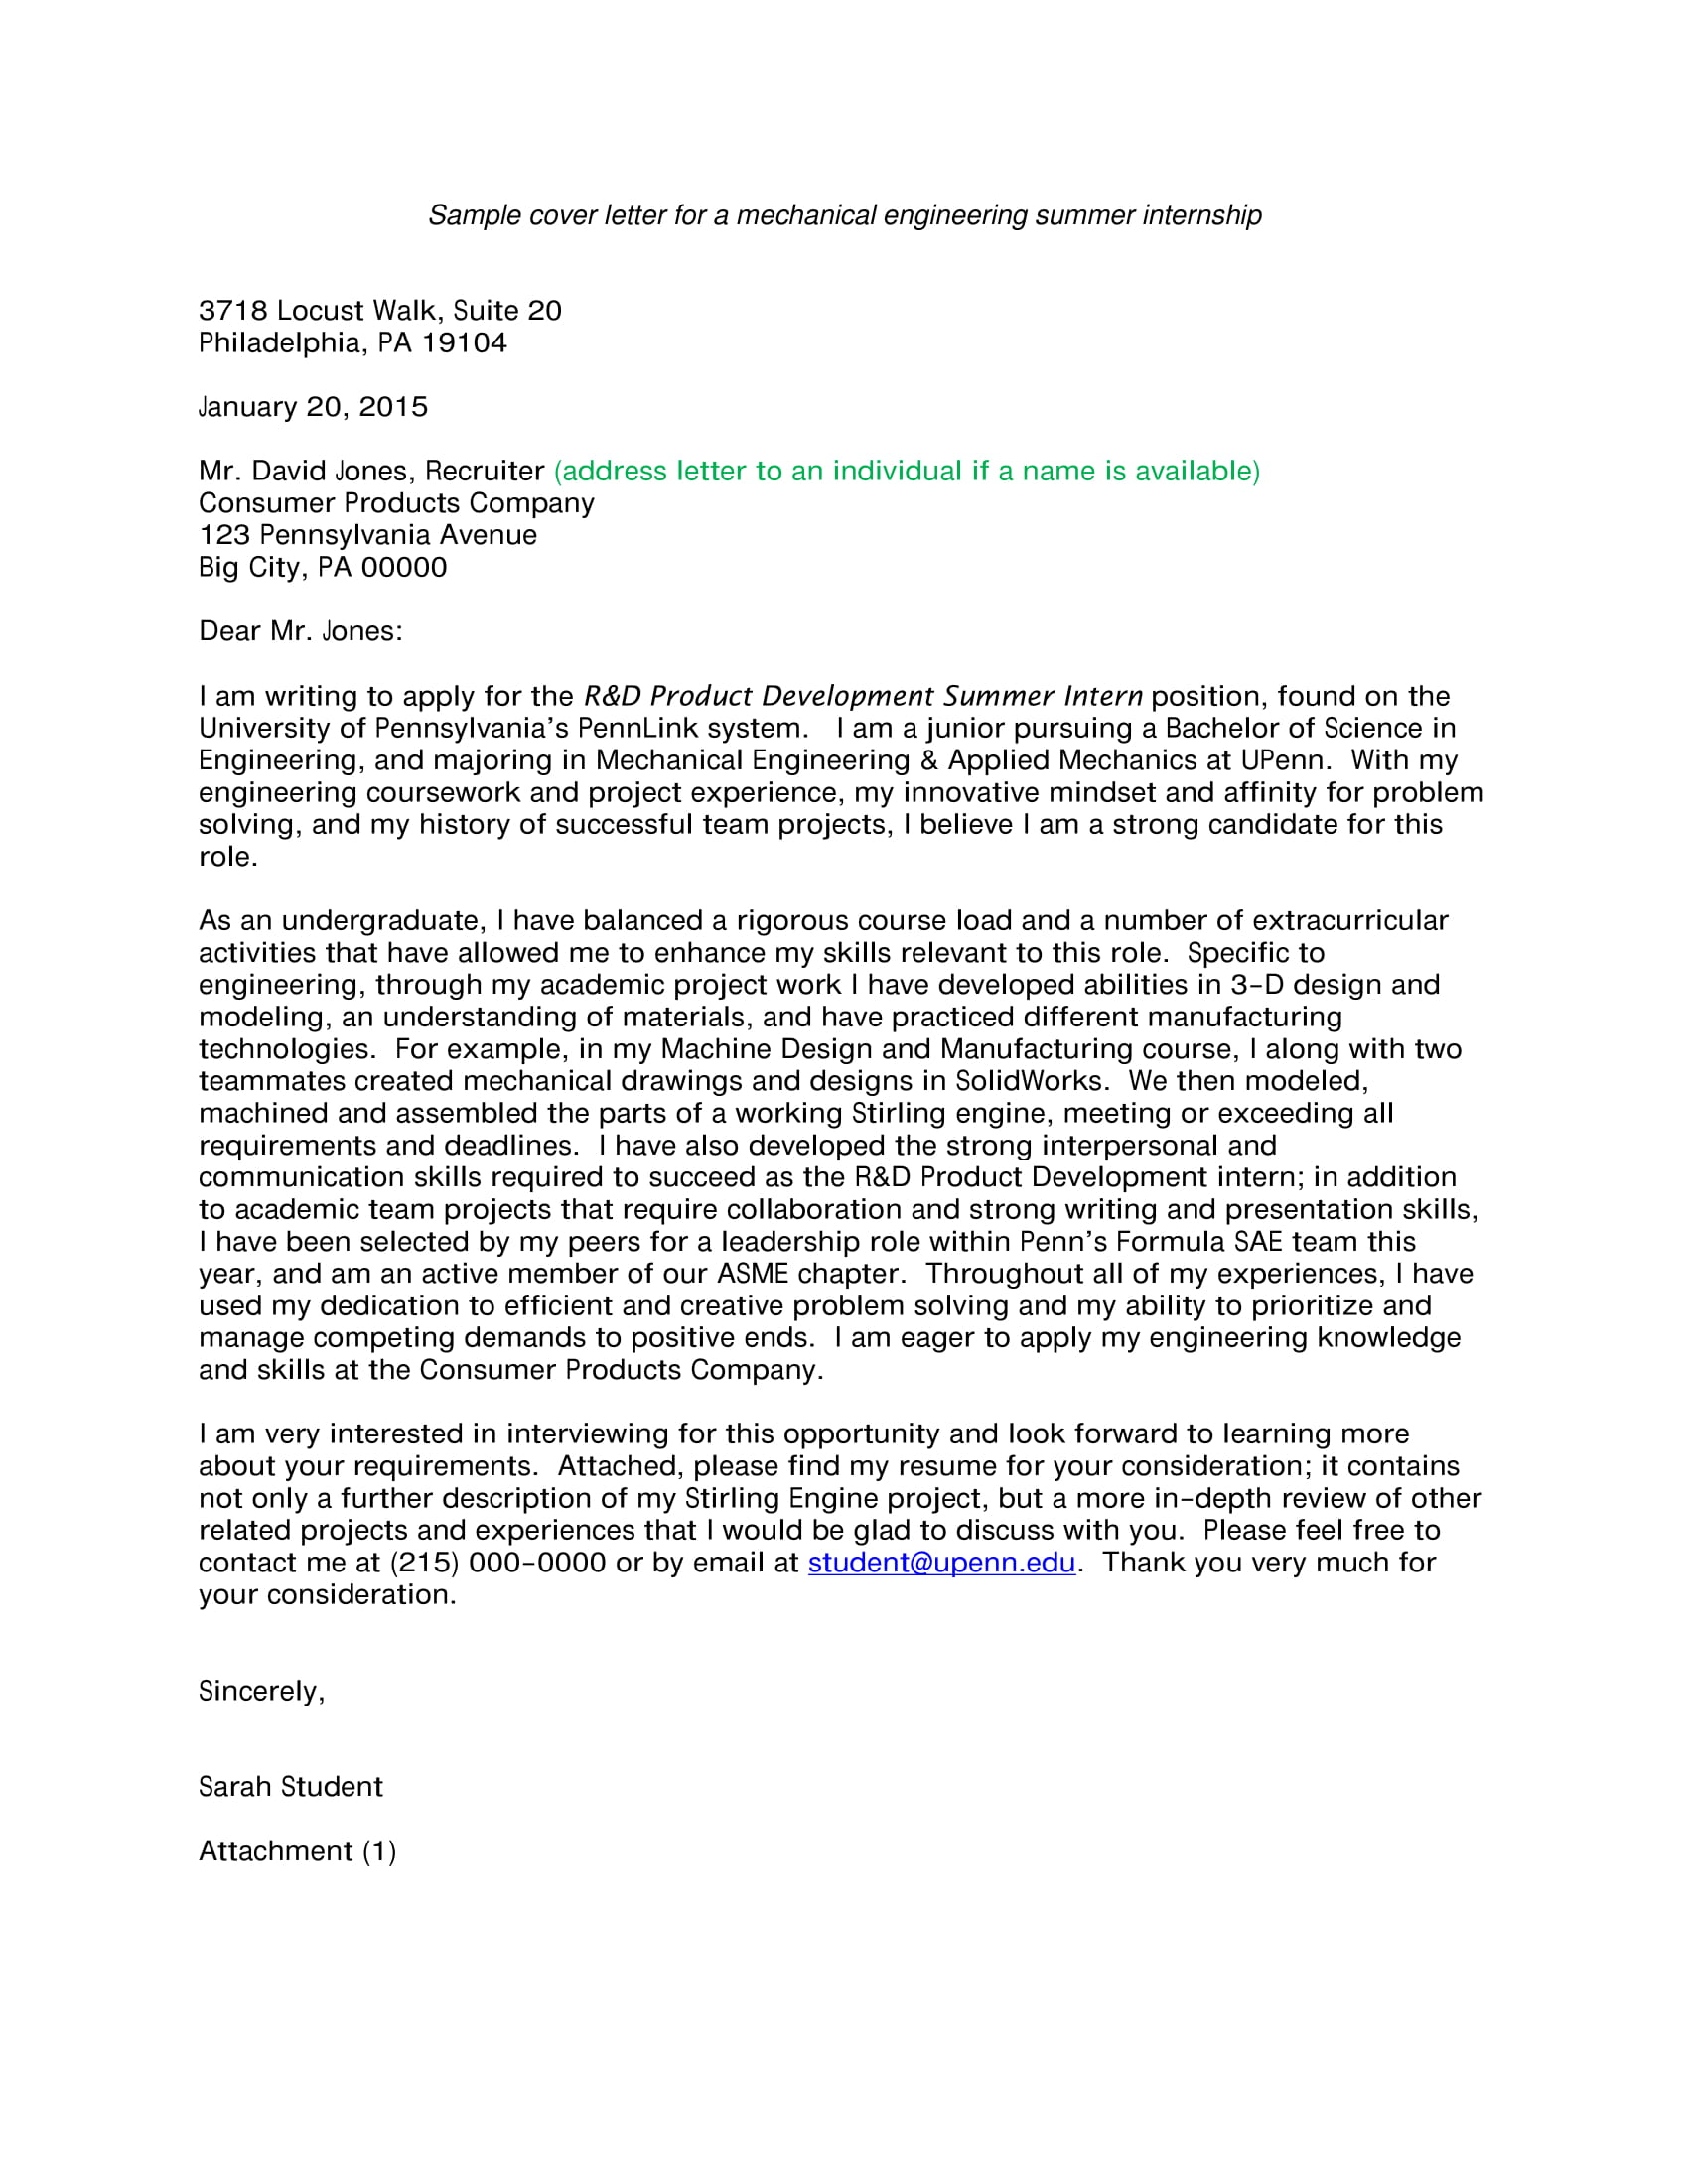 engineering sample internship cover letter 1